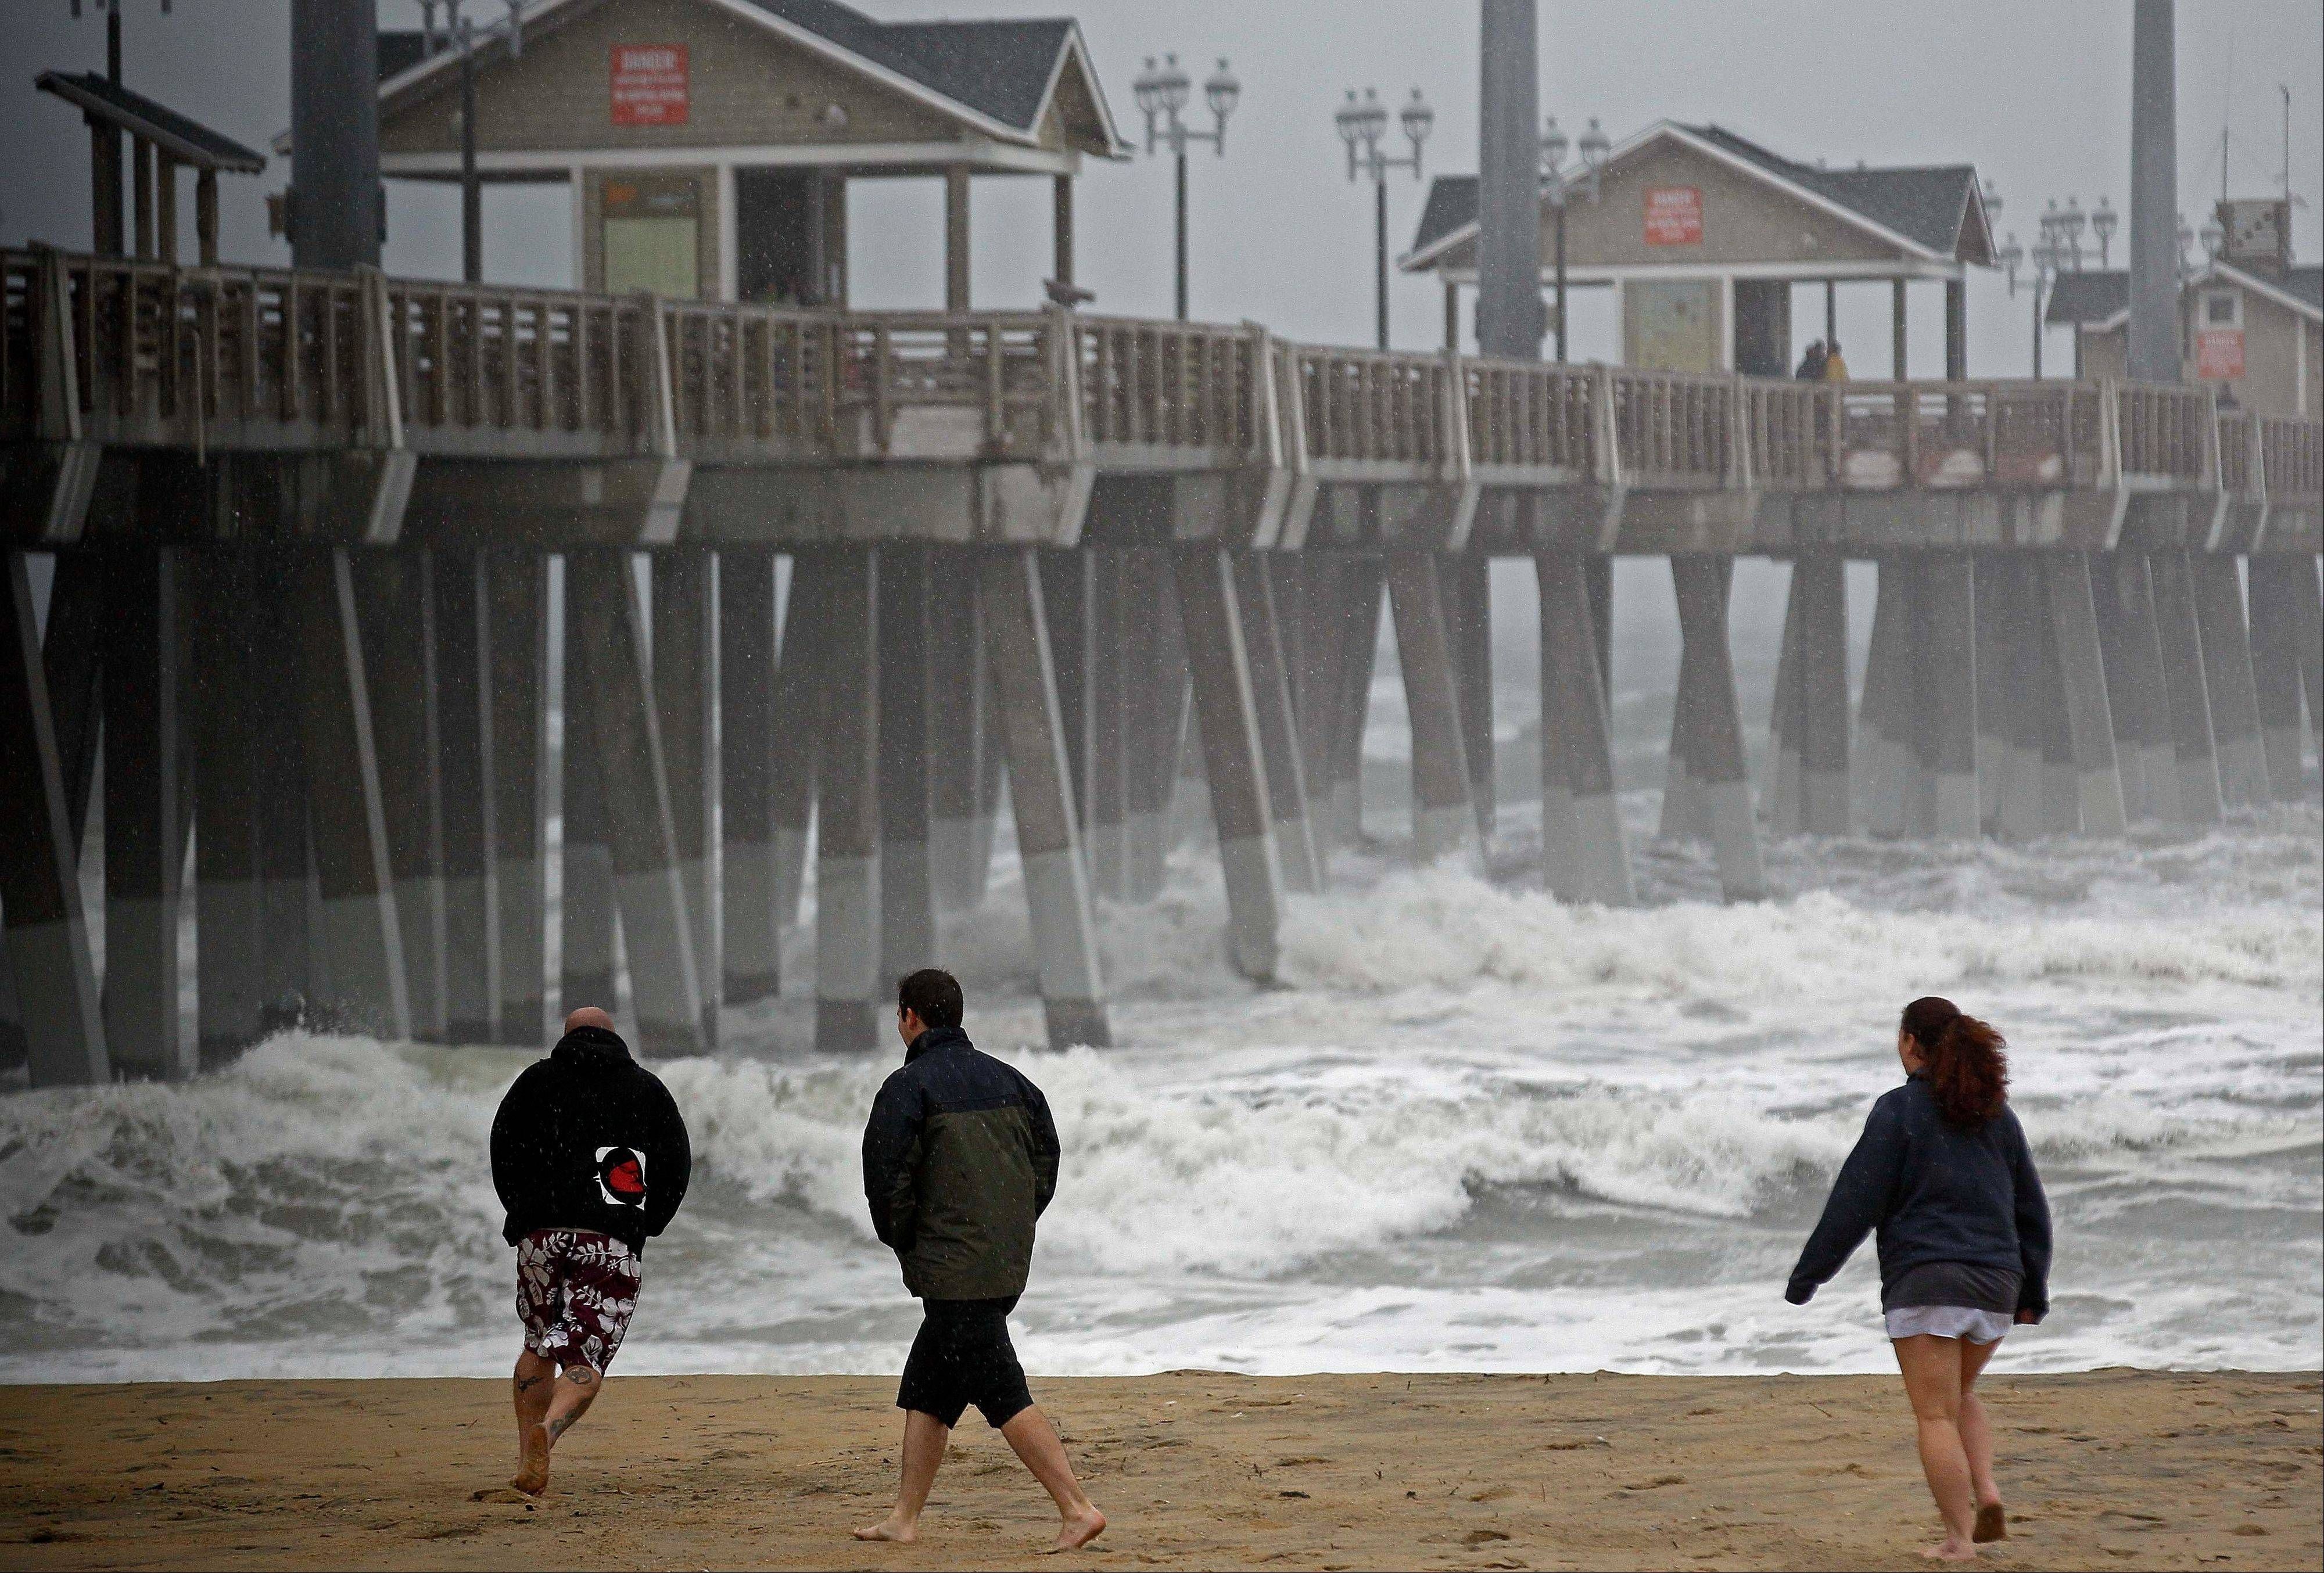 Beachgoers walk in the wind and rain as waves generated by Hurricane Sandy crash into Jeanette's Pier in Nags Head, N.C., Saturday, Oct. 27, 2012, as the storm churns up the east coast. Hurricane Sandy, upgraded again Saturday just hours after forecasters said it had weakened to a tropical storm, was barreling north from the Caribbean and was expected to make landfall early Tuesday.